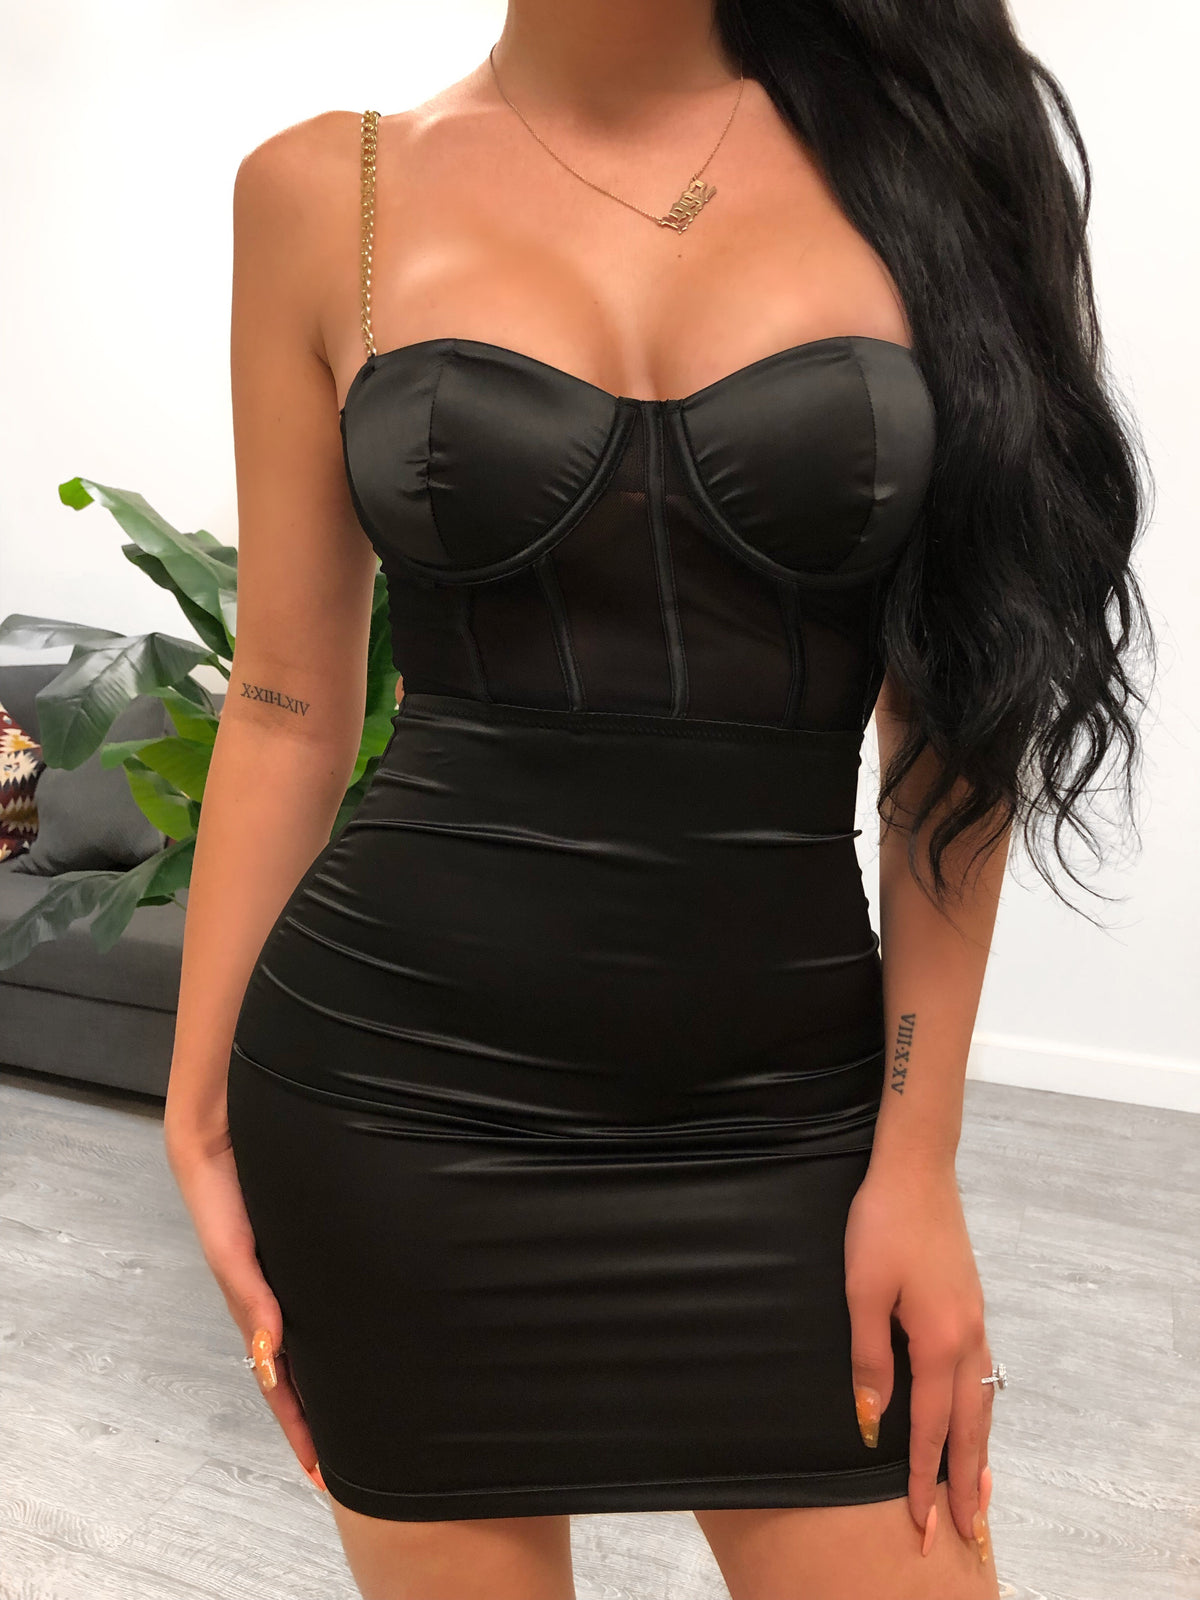 black chain dress, mesh, underwire cup, above the knee length